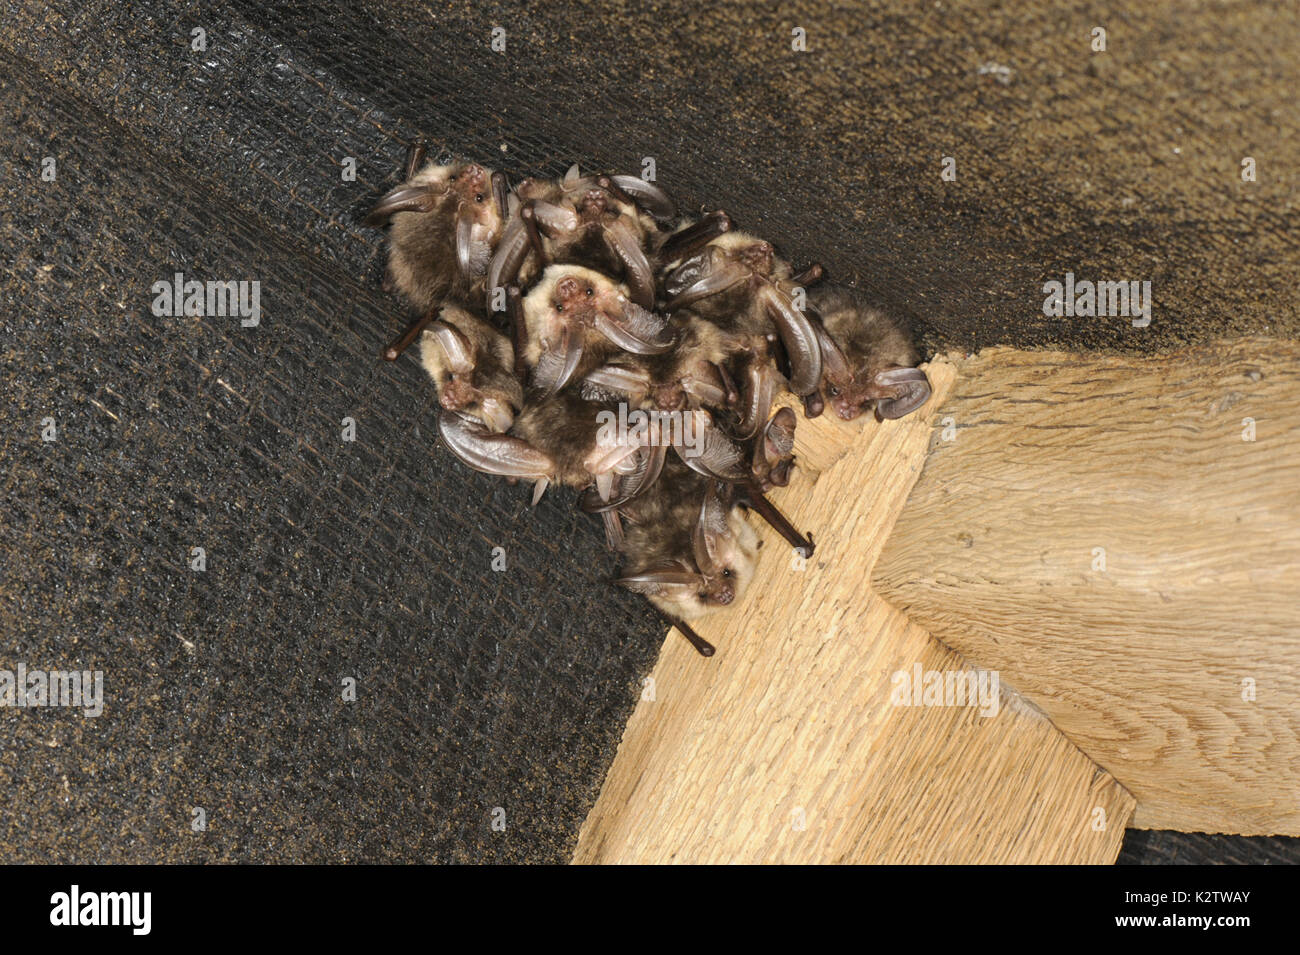 Brown Long-eared Bat - Plecotus auritus winter roost - Stock Image